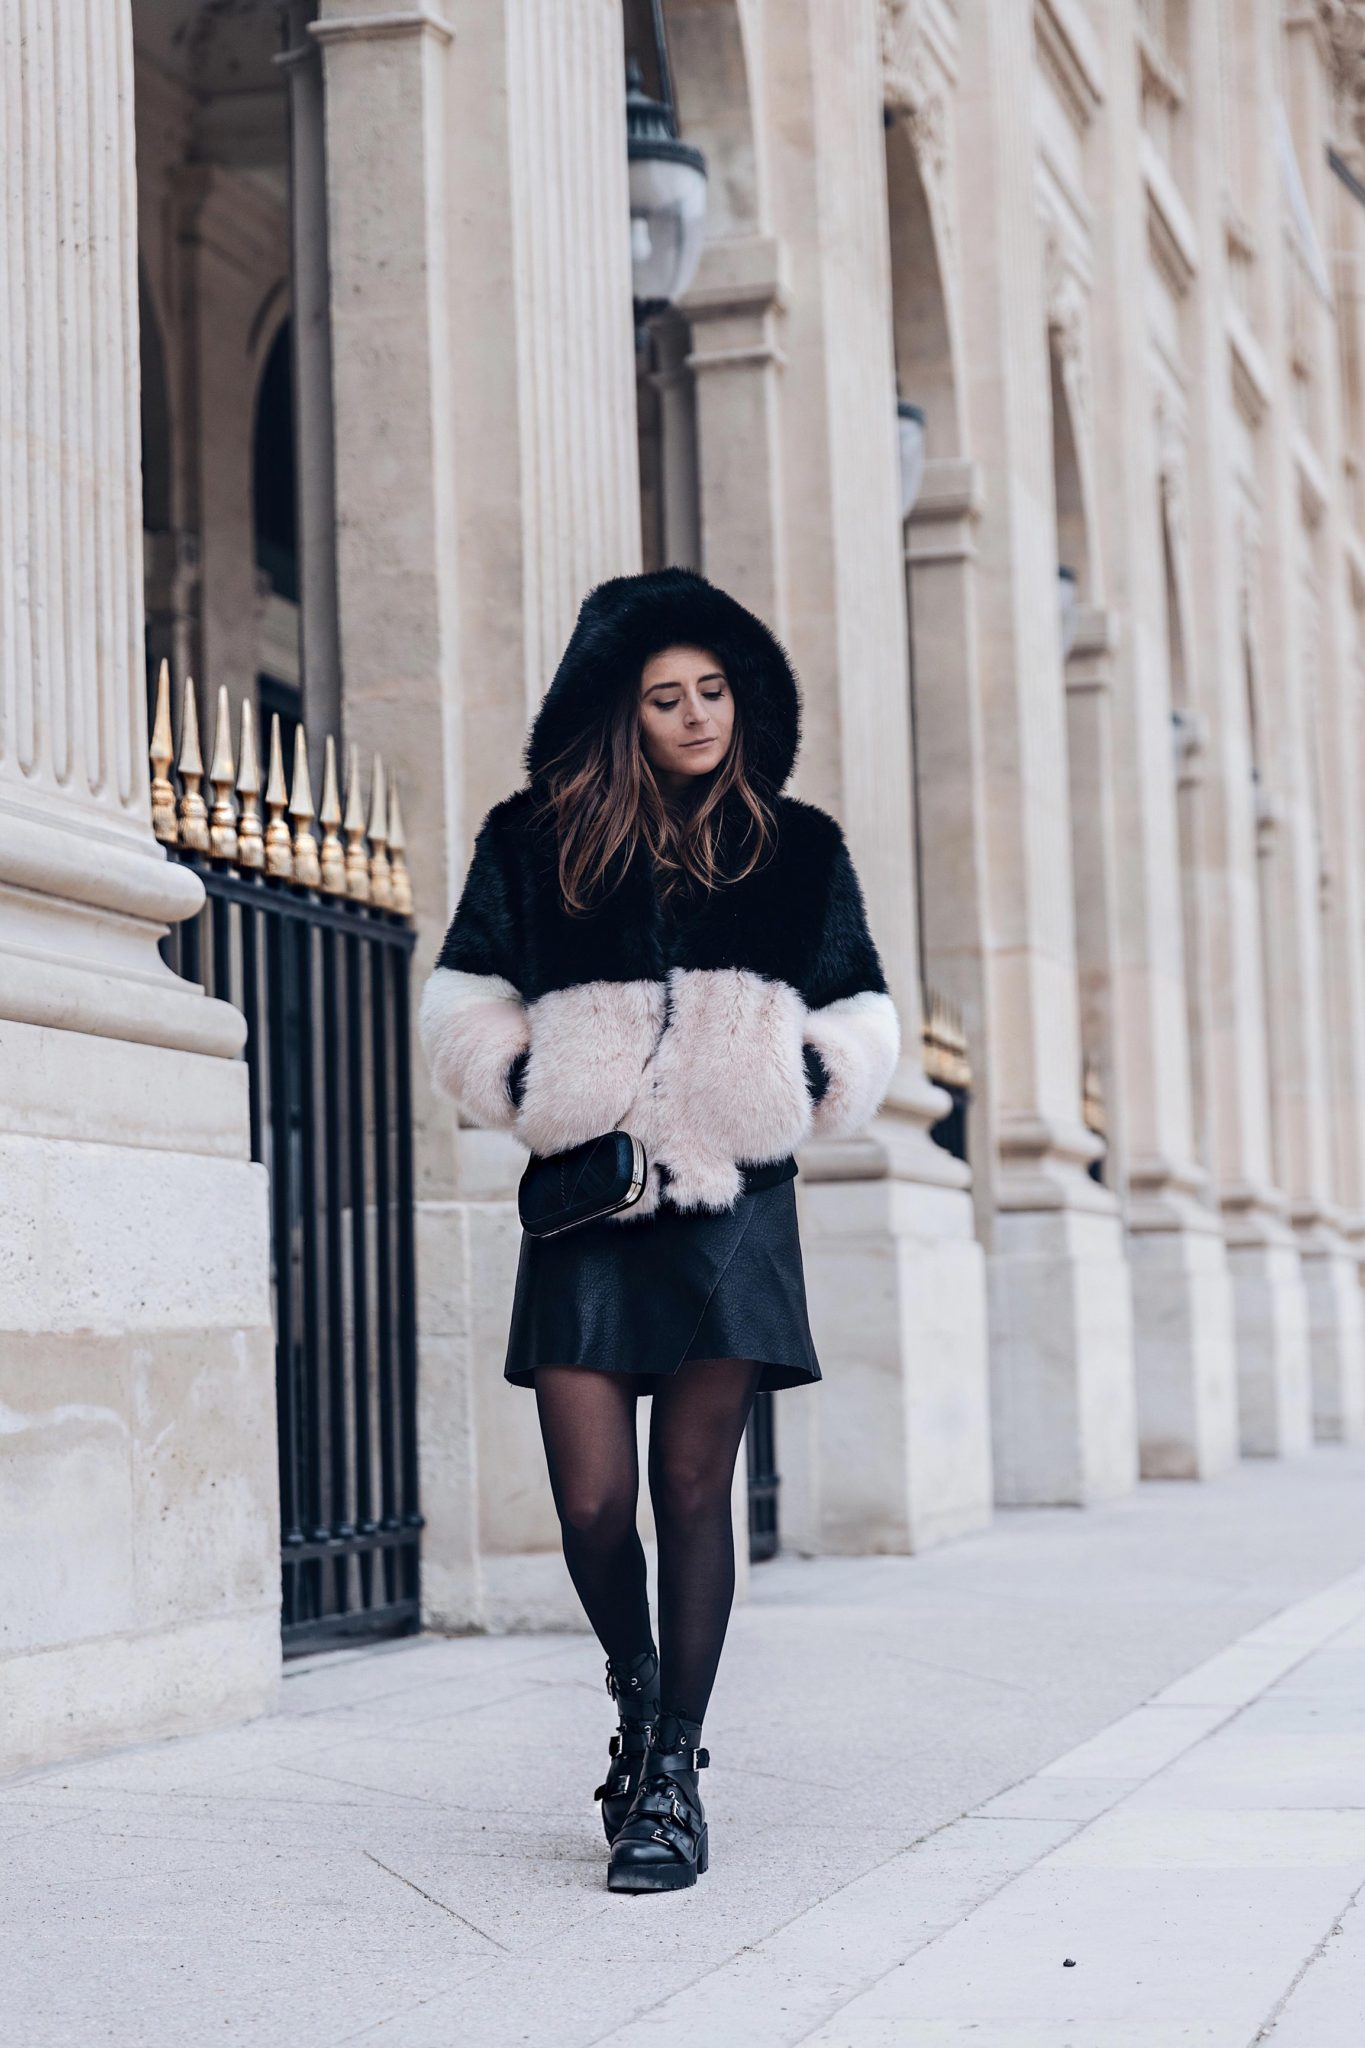 Best Street Style Paris Fashion Week Mars 2018 of Julia Comil / French Fashion Blogger in Los Angeles - Outfit for Victoria Tomas Fall Winter 2018 2019 show - Faux Fur Coat La Seine et Moi - Shoes Ash - Bag Lili Radu